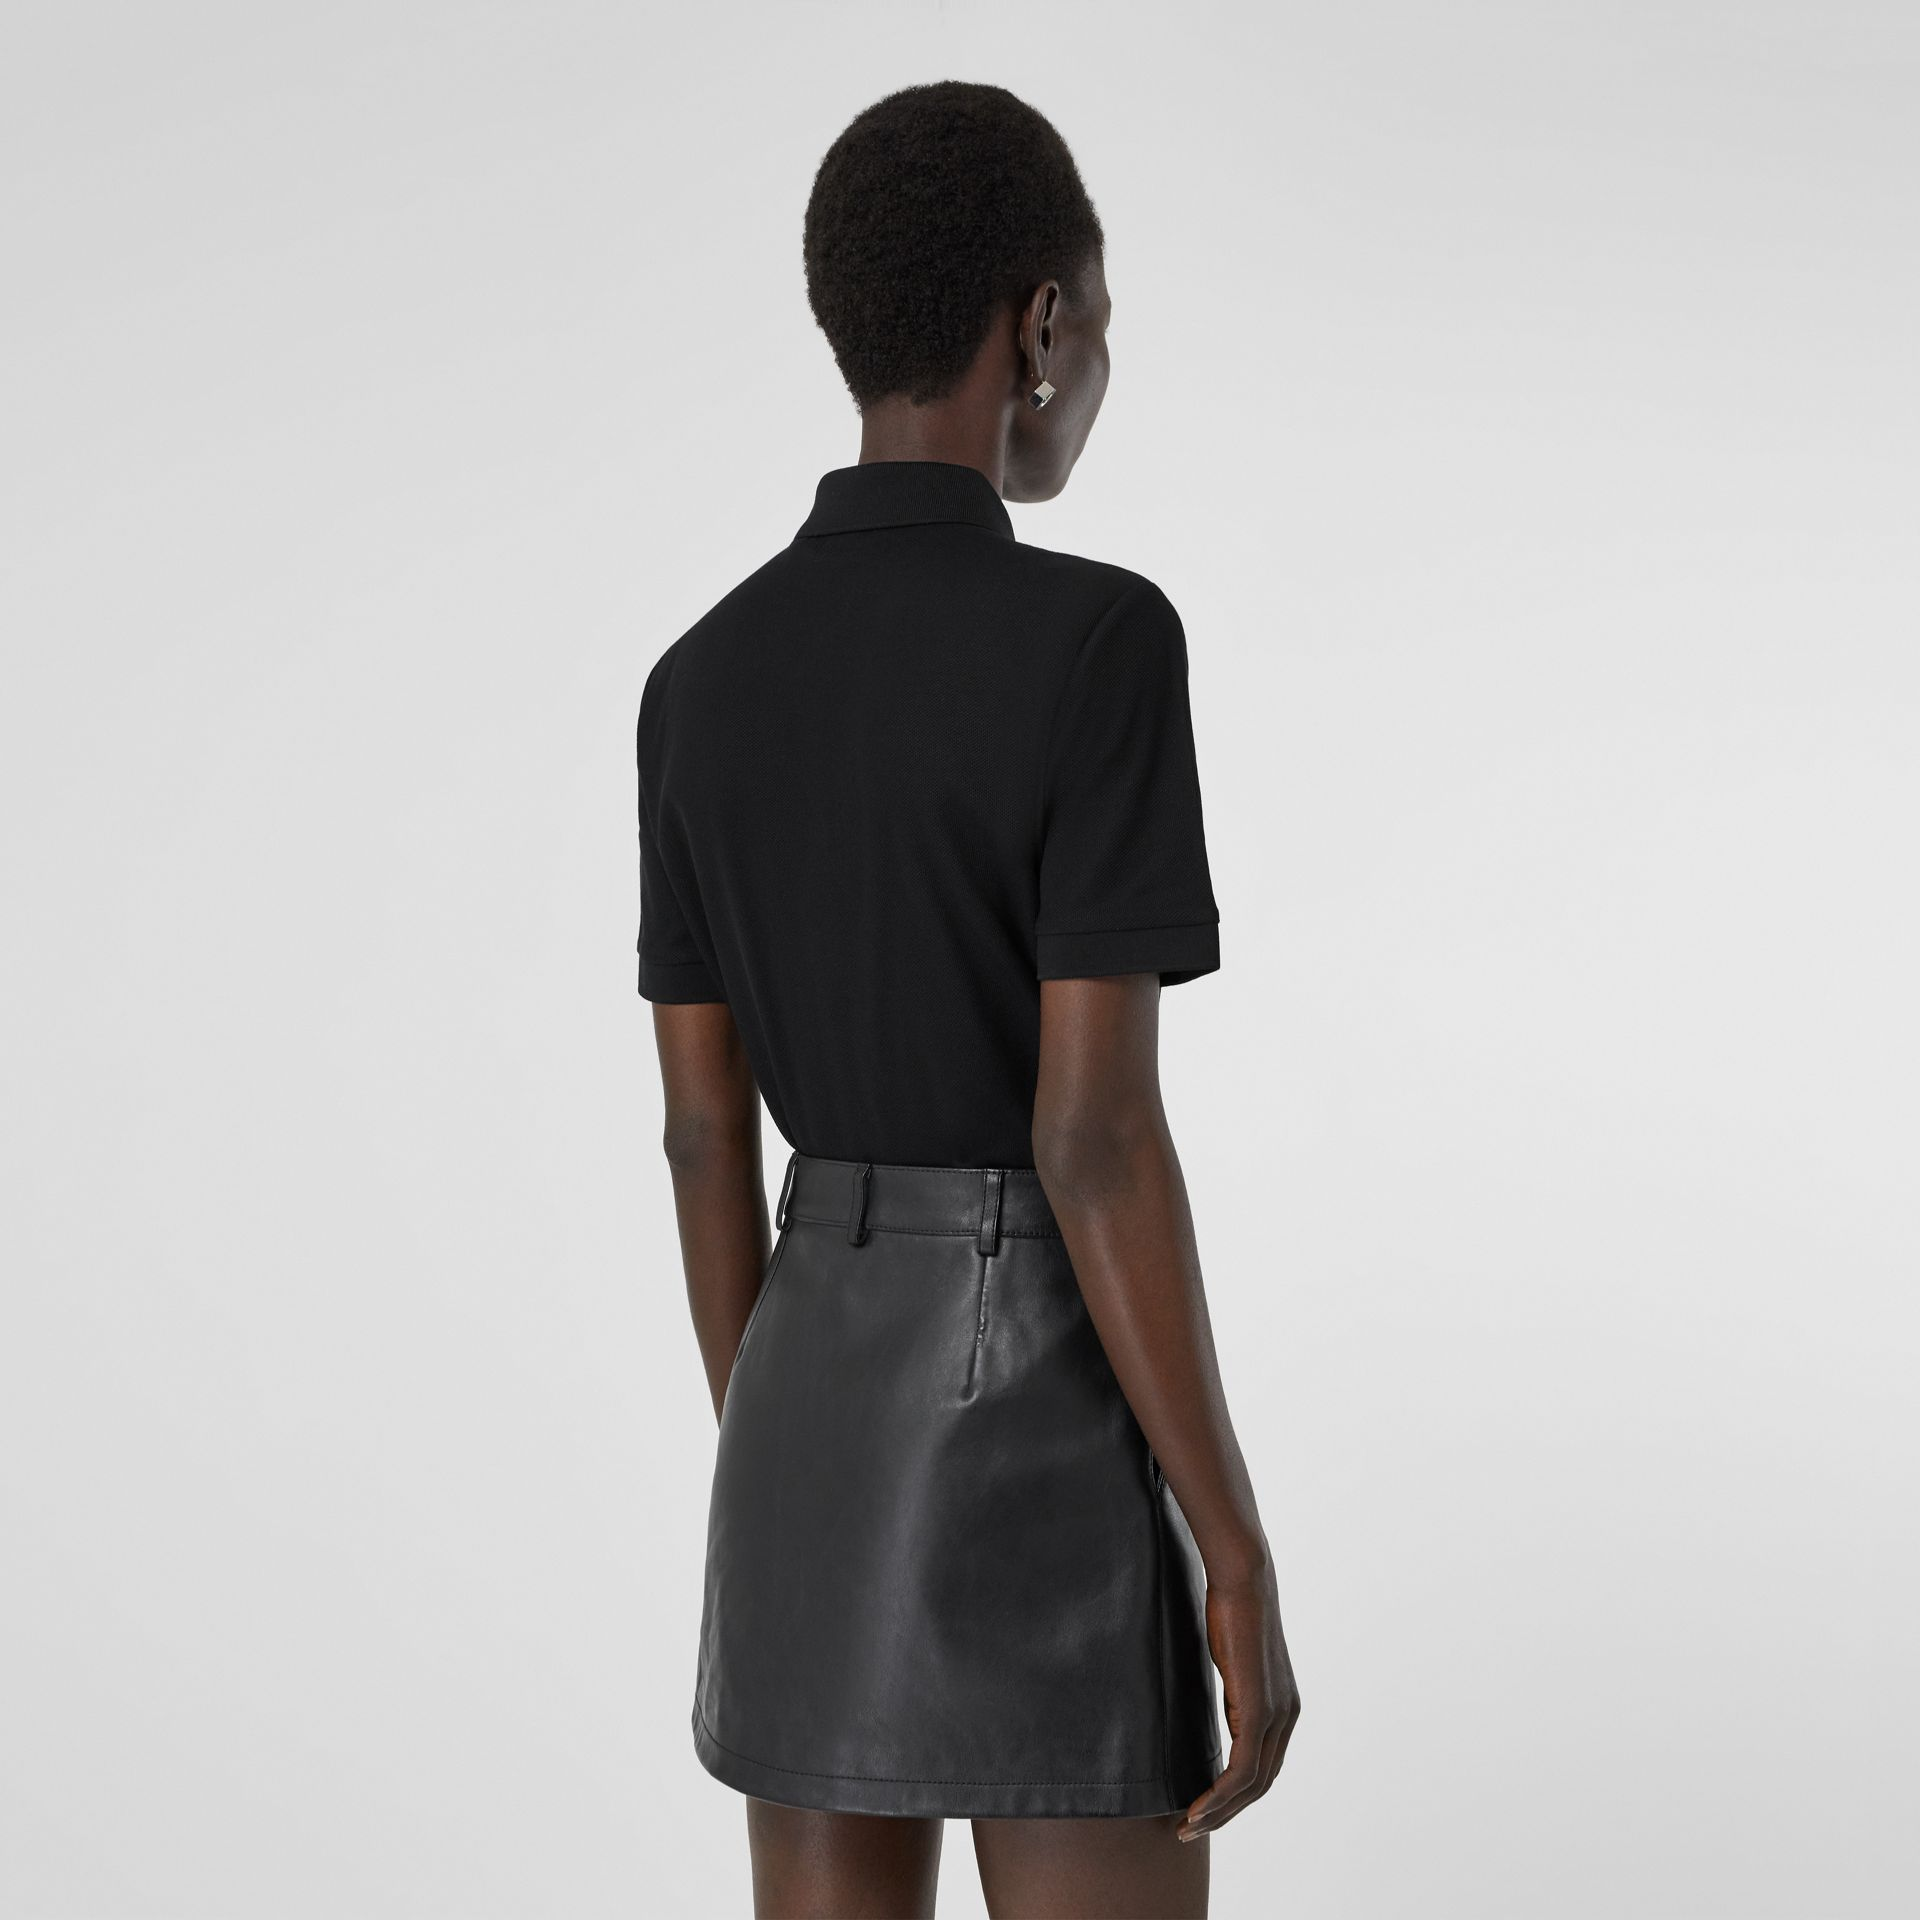 Monogram Motif Cotton Piqué Polo Shirt in Black - Women | Burberry - gallery image 2